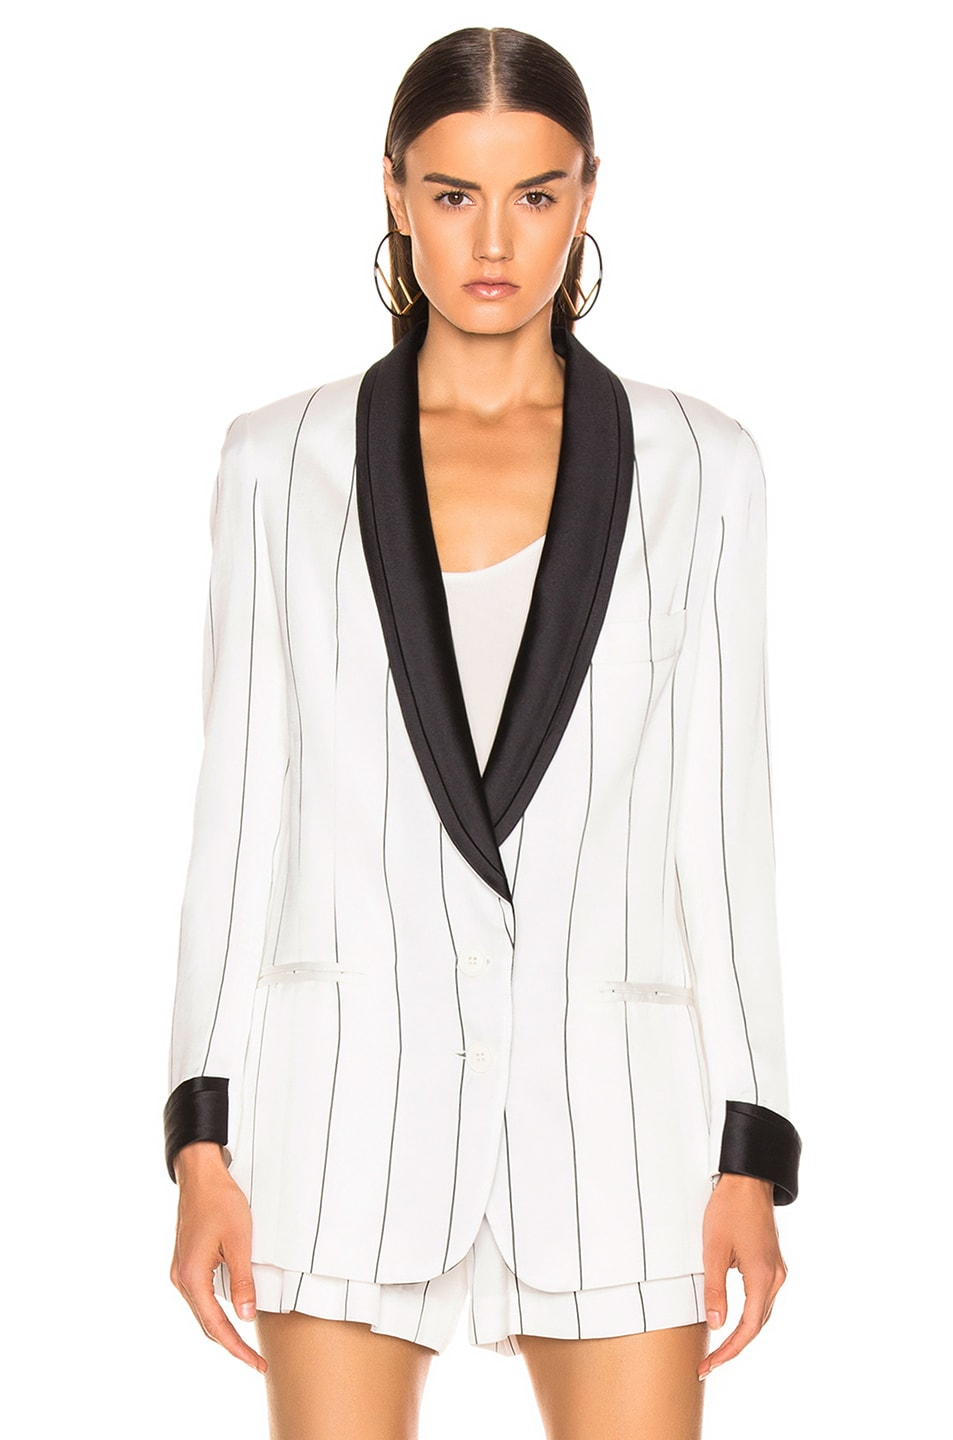 Image 2 of Smythe Salon Blazer in White & Black Diagonal Stripe